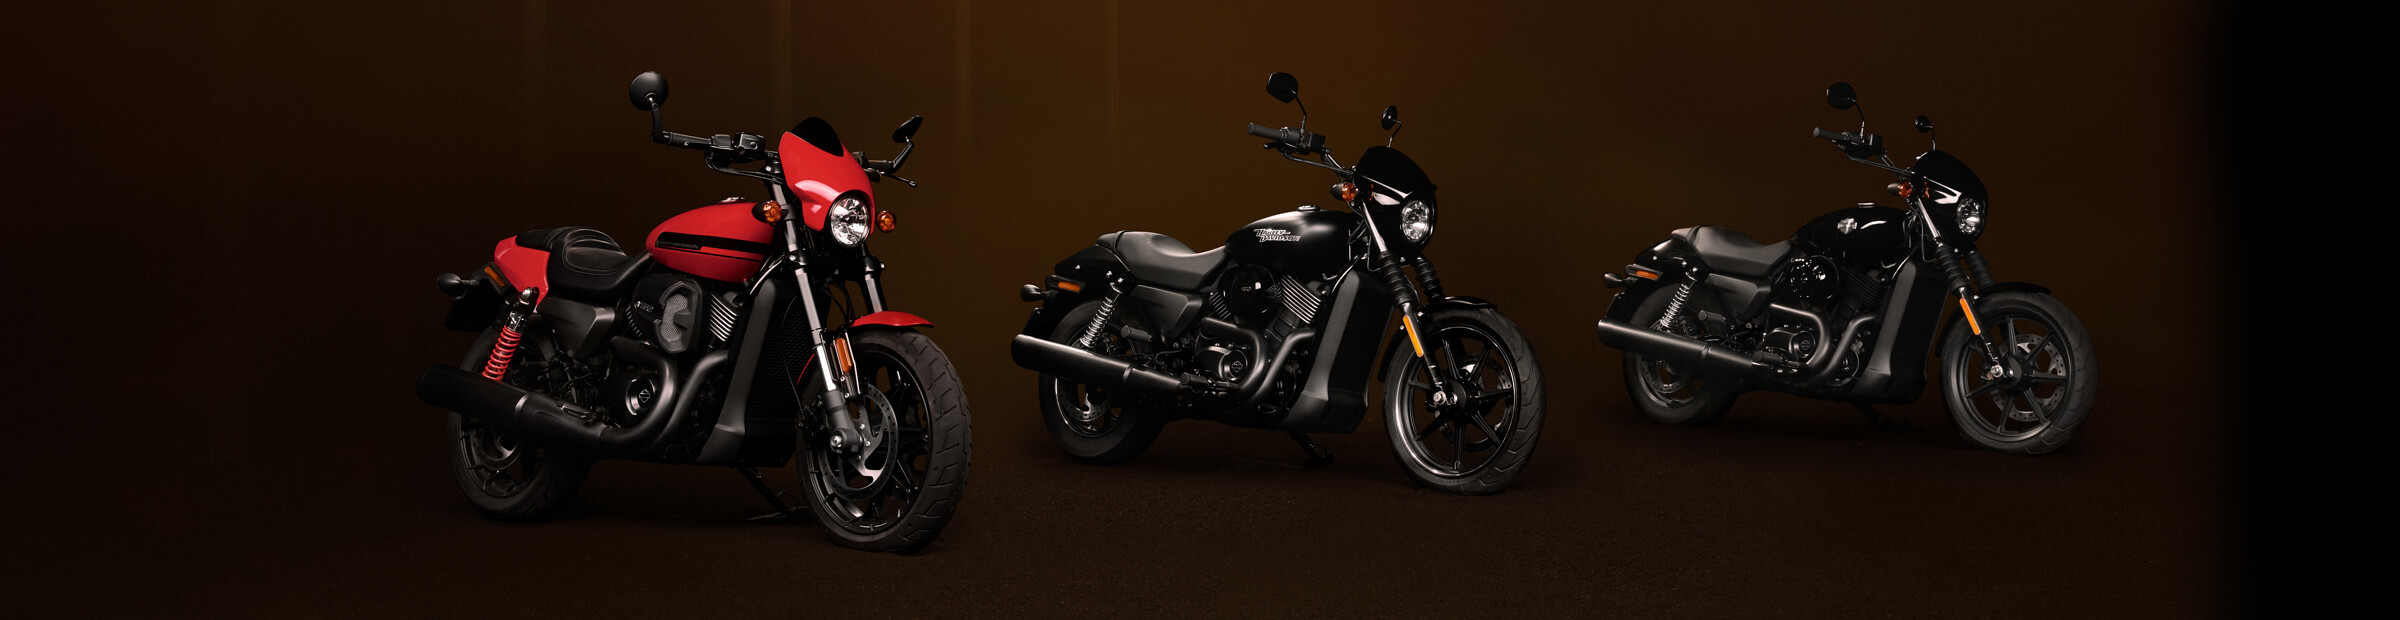 2020 H-D<sup>®</sup> Motorcycles